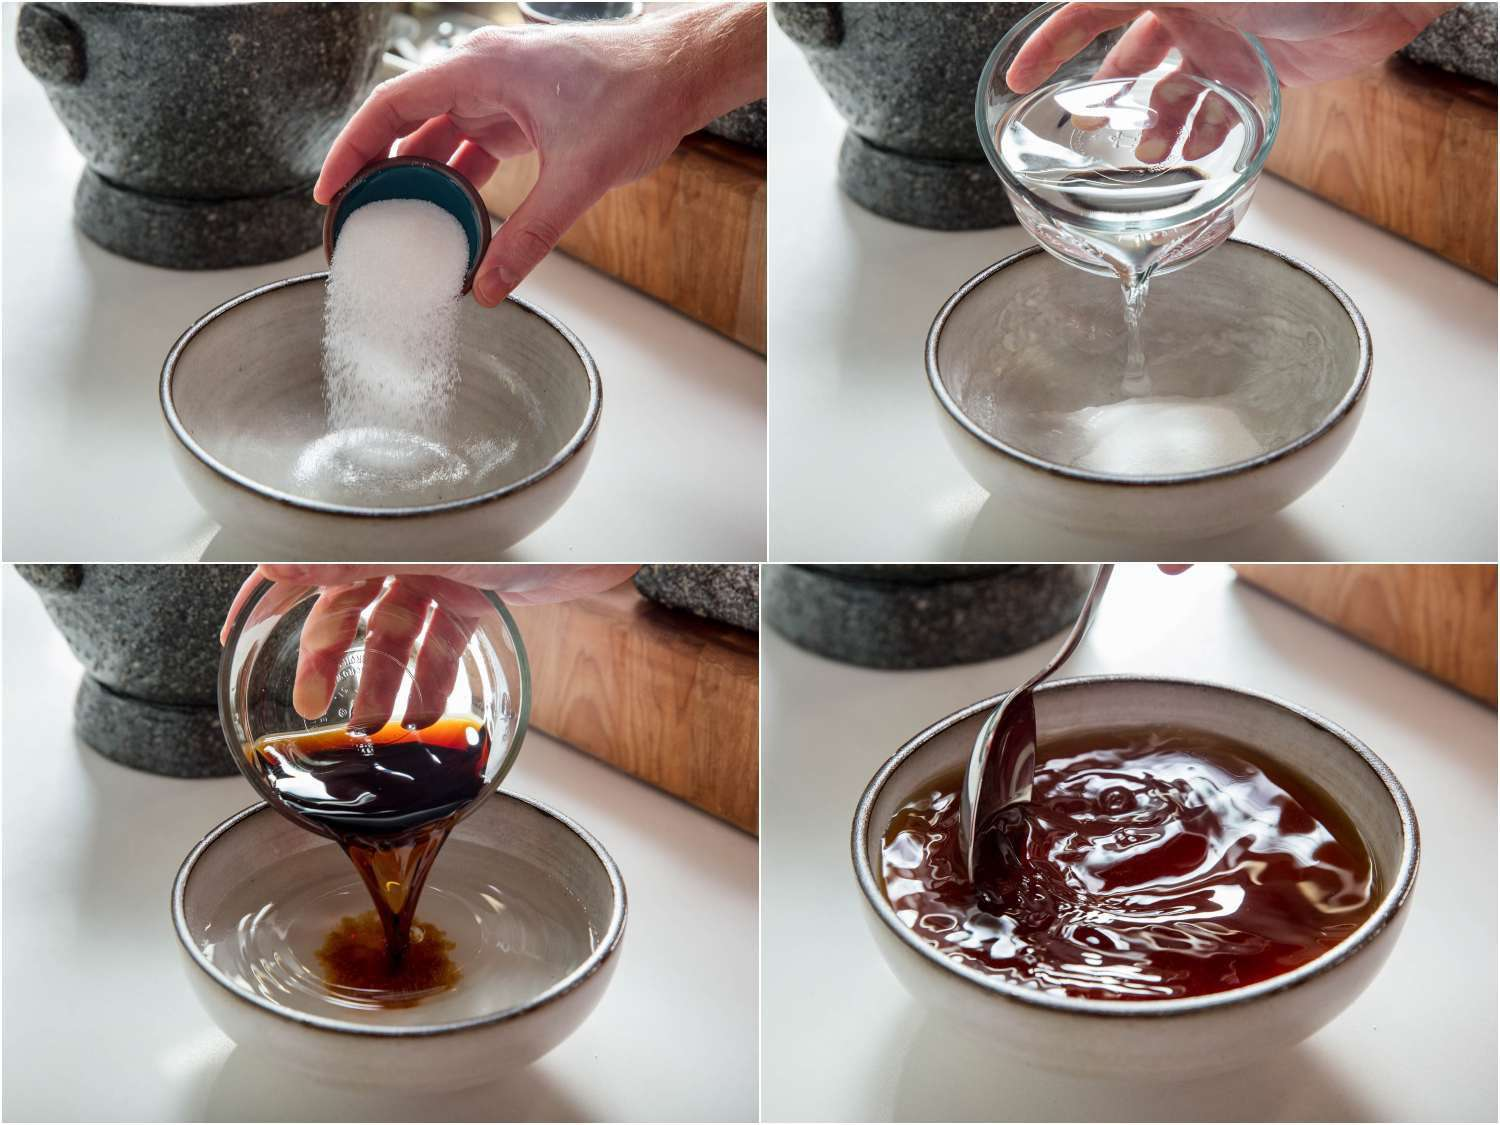 Process shots of stirring together sugar, distilled vinegar, and soy sauce for dipping sauce.